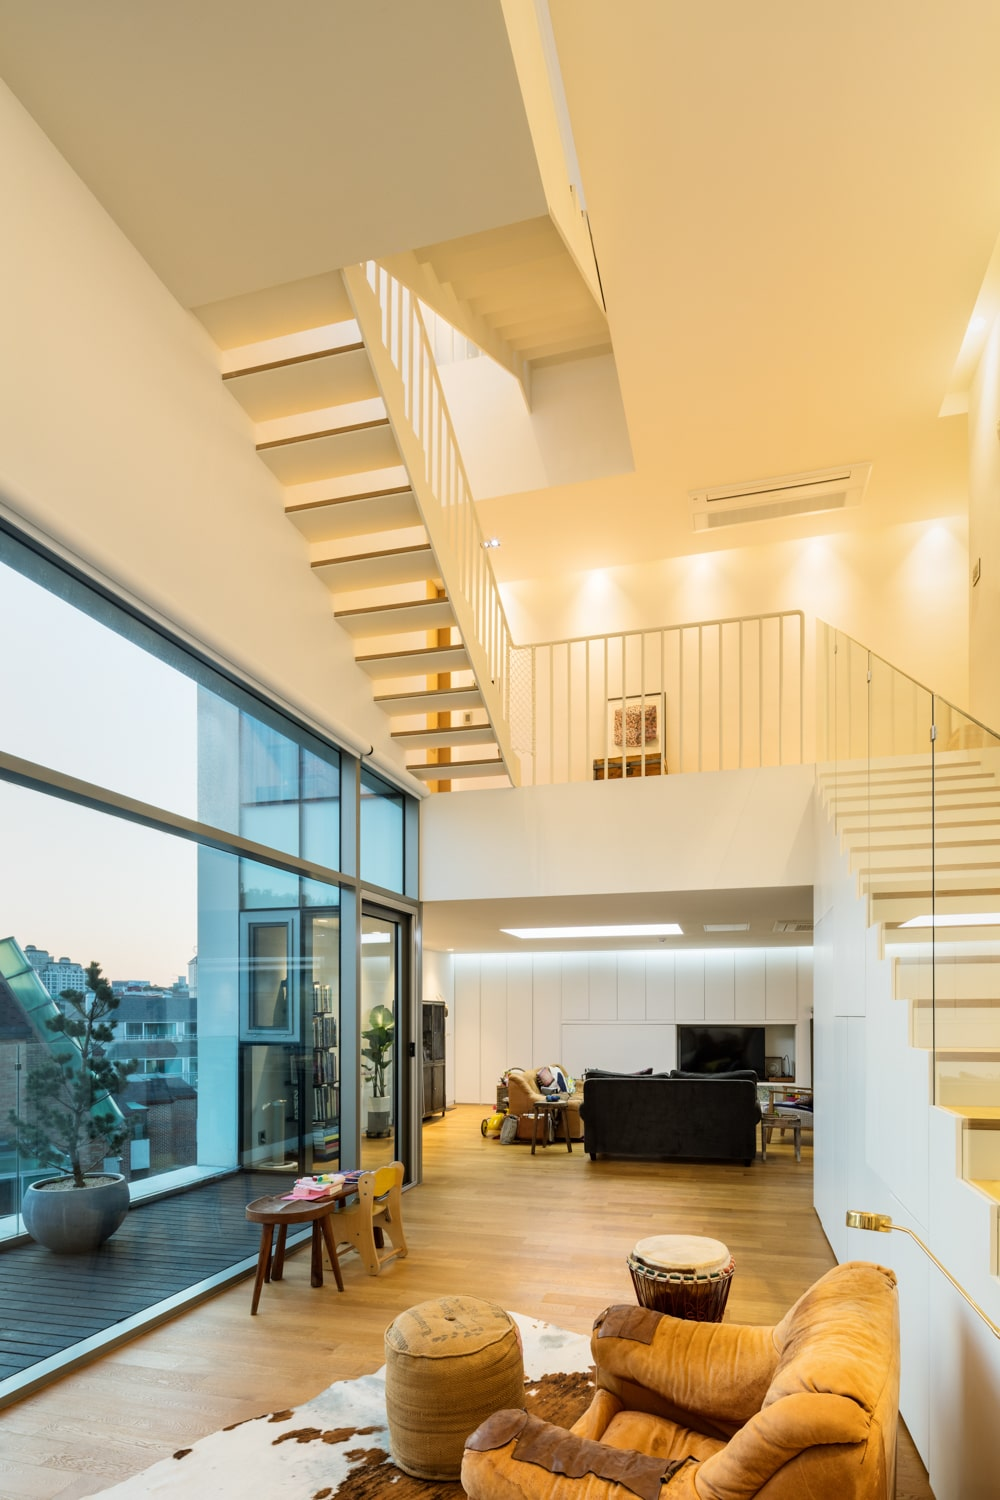 This is an interior view of the building with a comfortable cushioned armchair by the large glass wall that leads to the balcony.